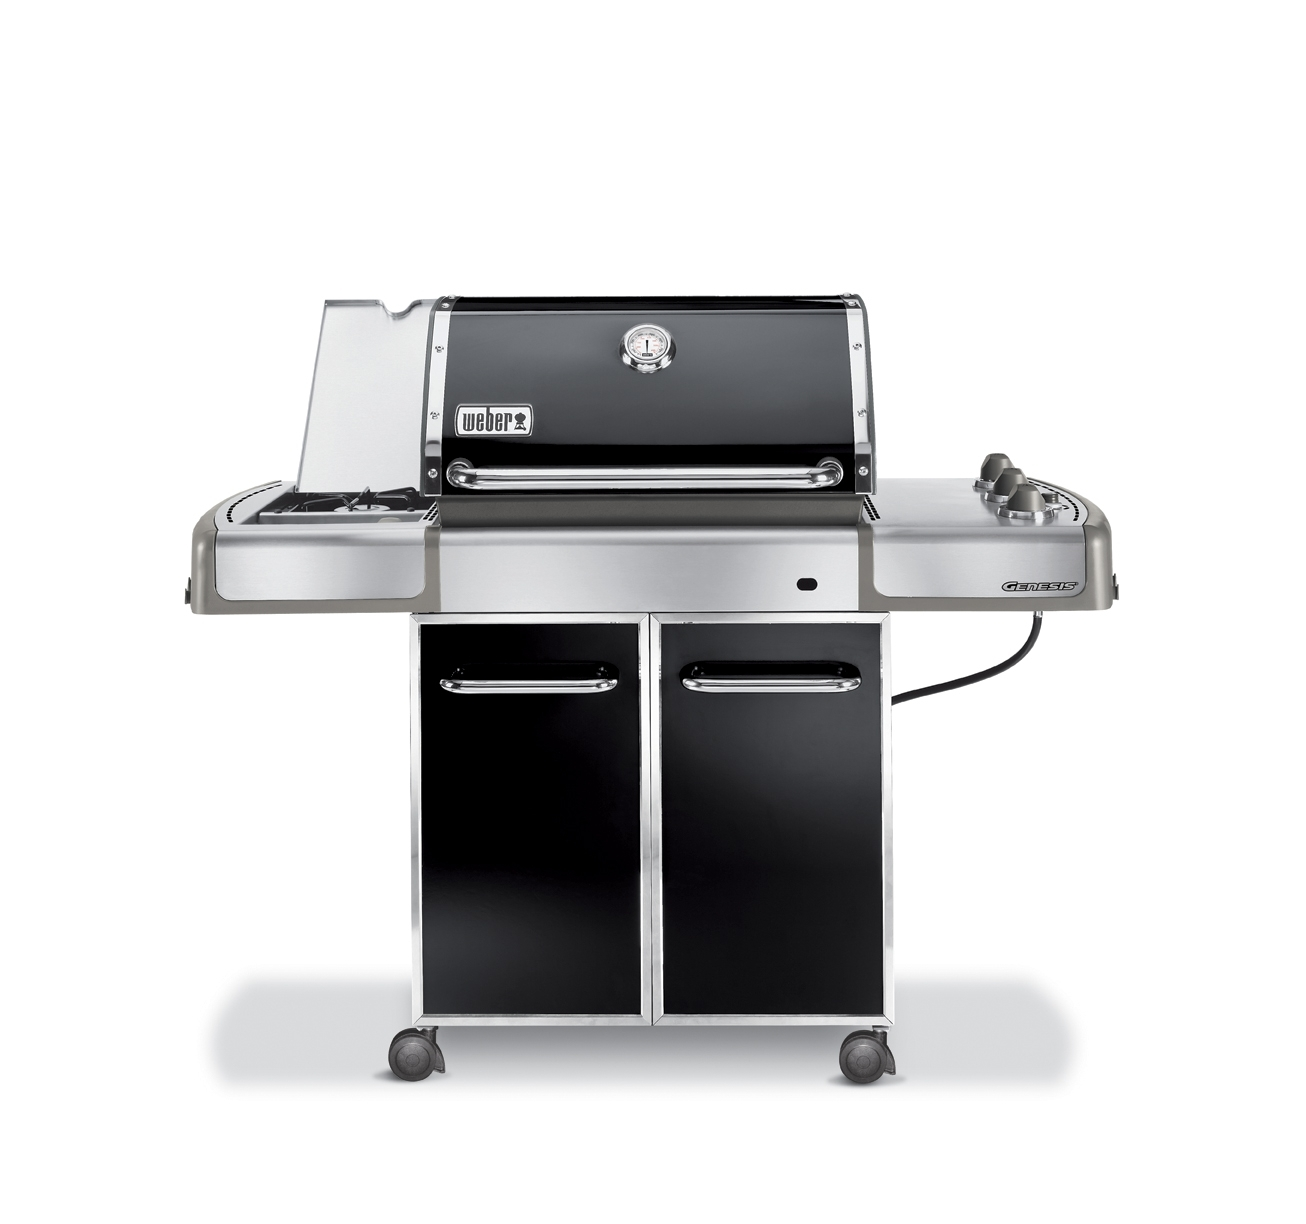 weber stephen products recalls gas grills due to fire. Black Bedroom Furniture Sets. Home Design Ideas